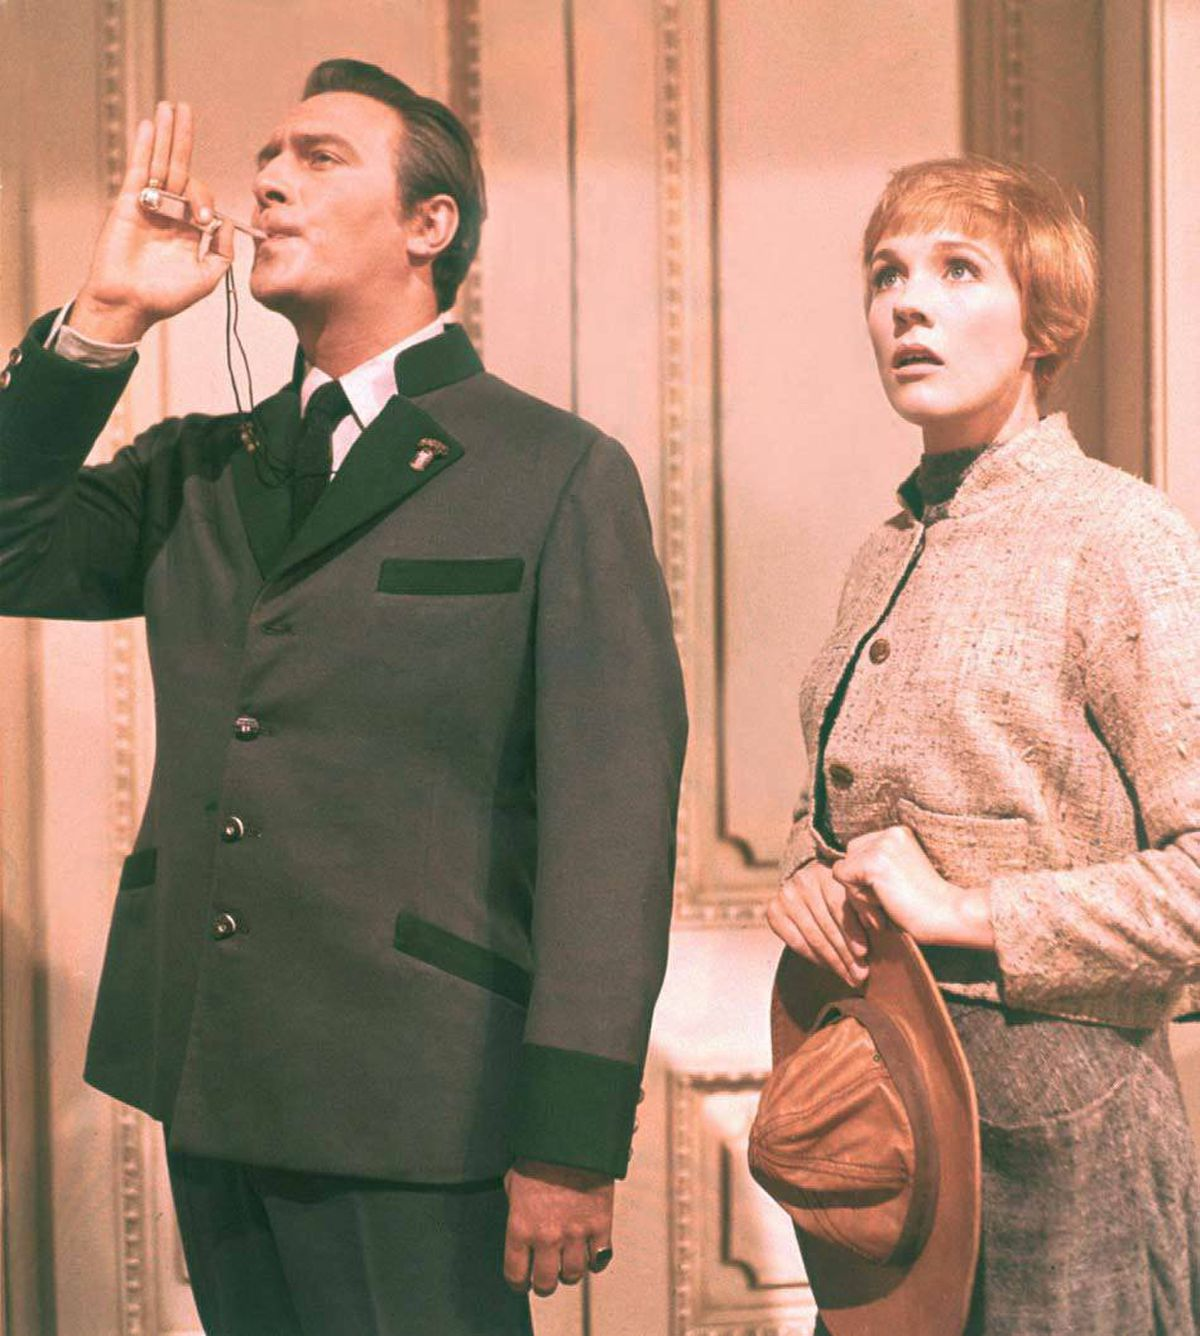 Christopher Plummer and Julie Andrews in The Sound of Music (1965).